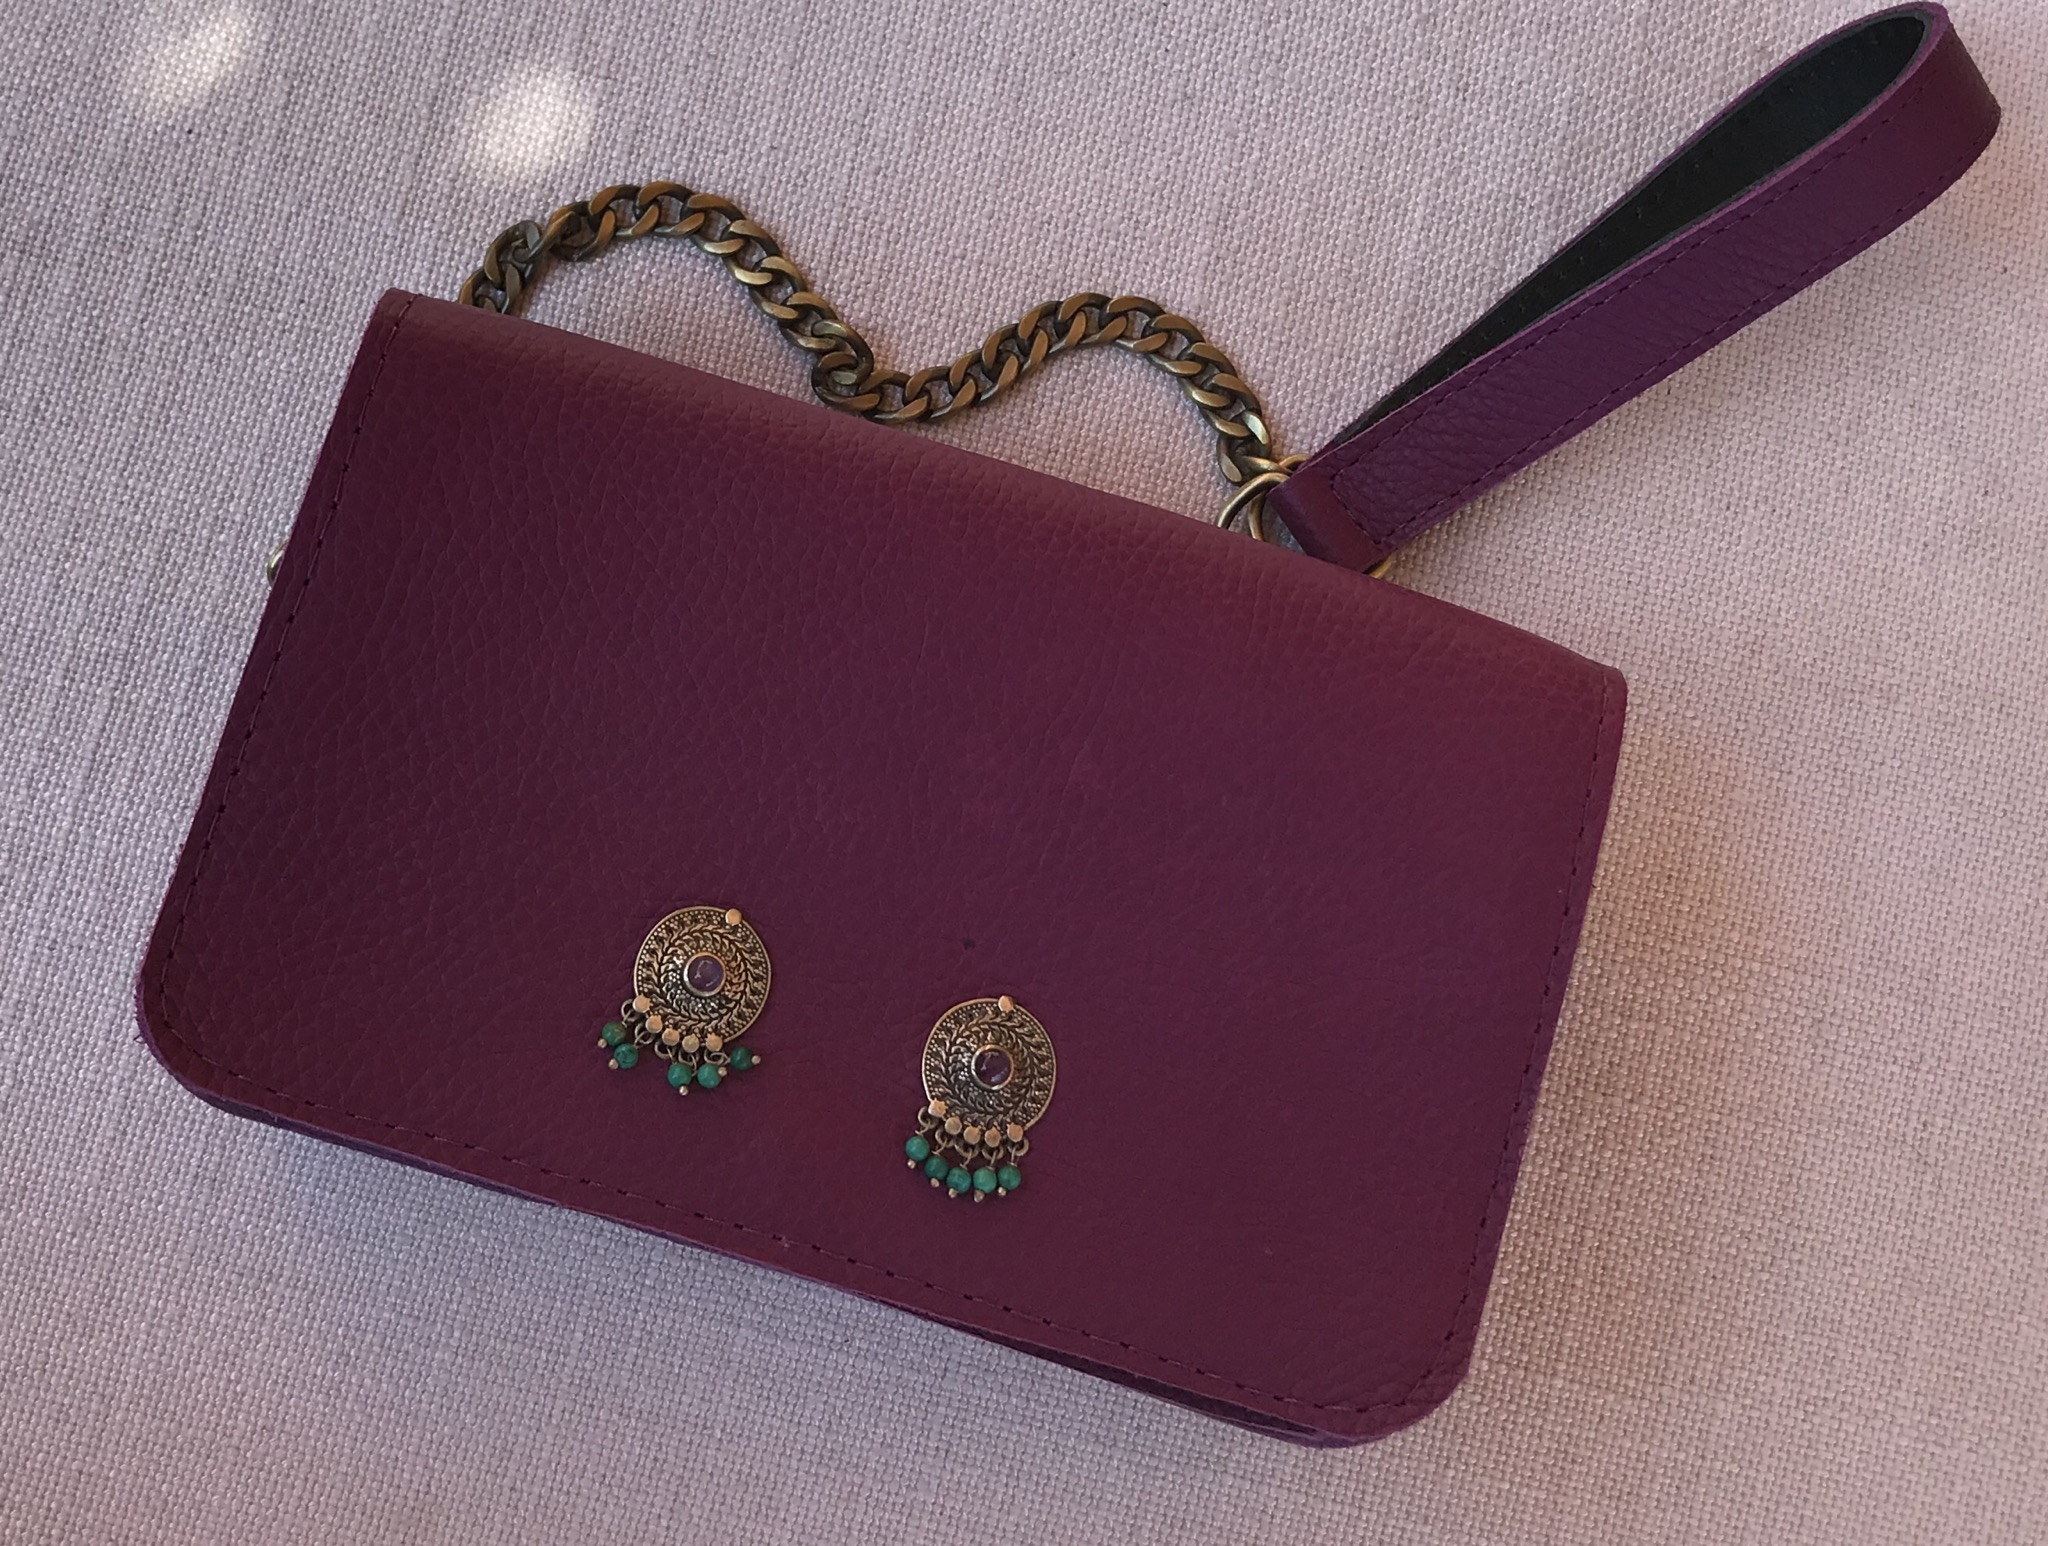 Mini bag jewelry leather purple